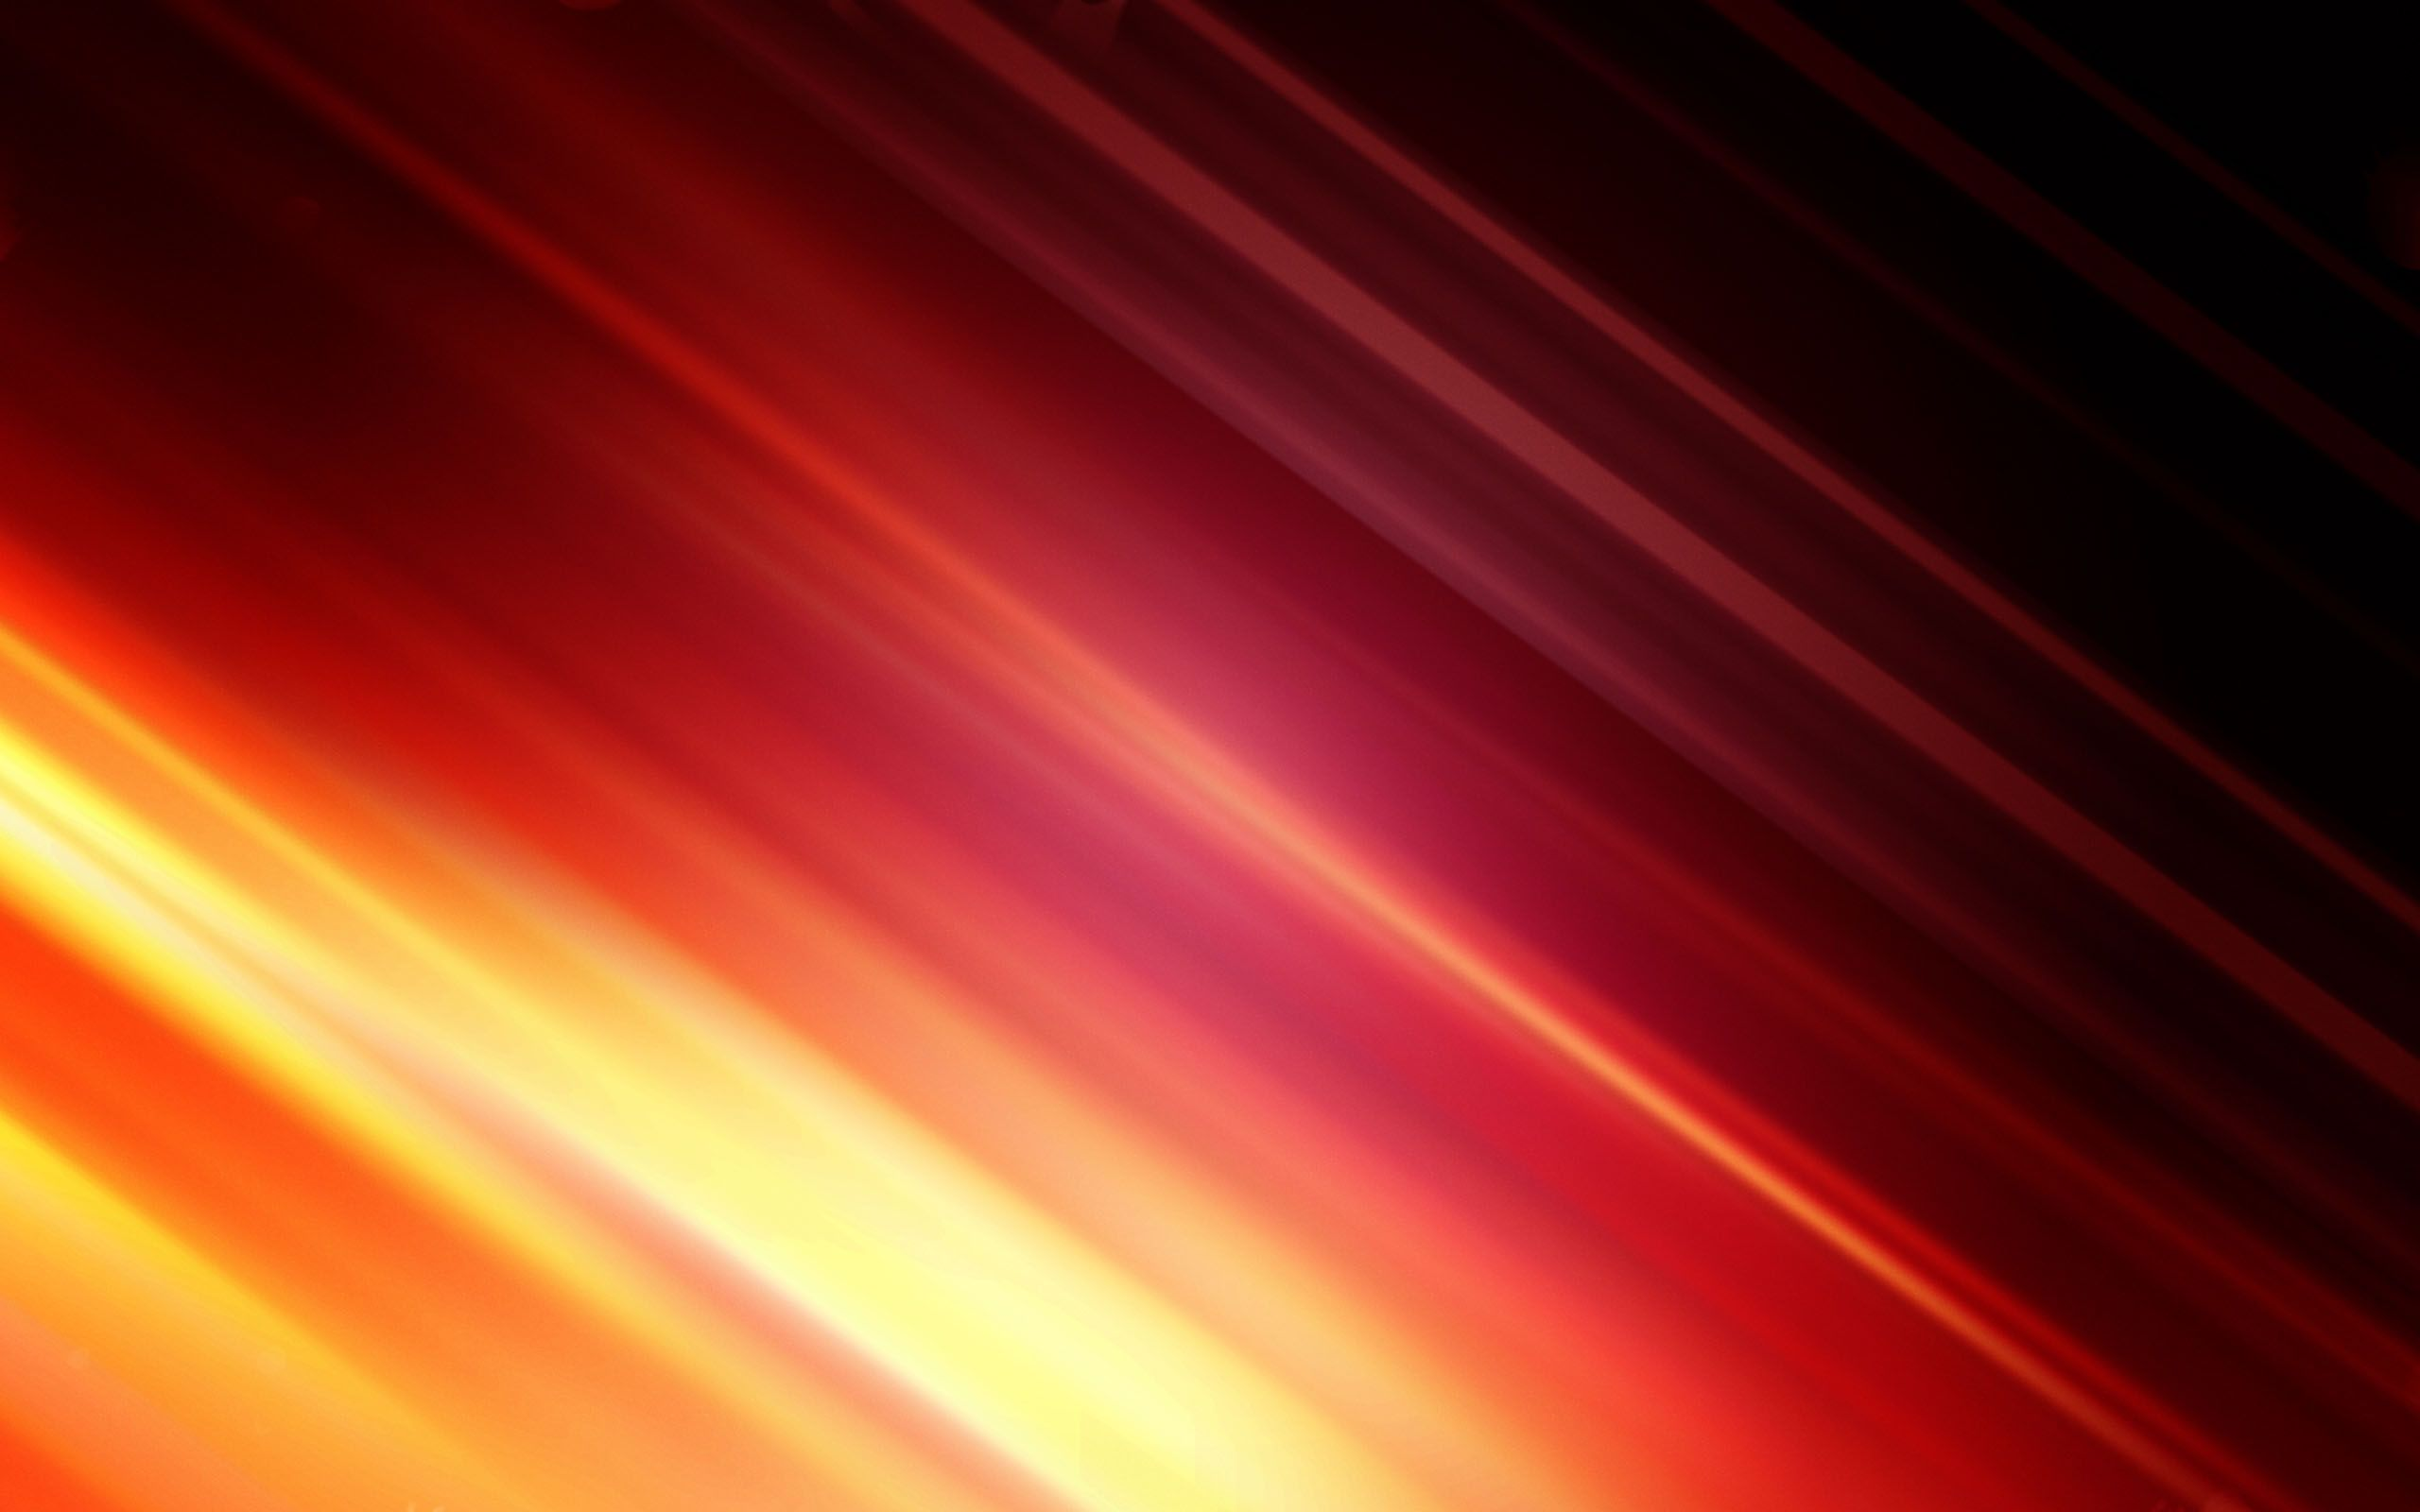 Cool Wallpaper Home Screen Red - 12e648b27be7208858da27b04598bdfc  Gallery_553770.jpg